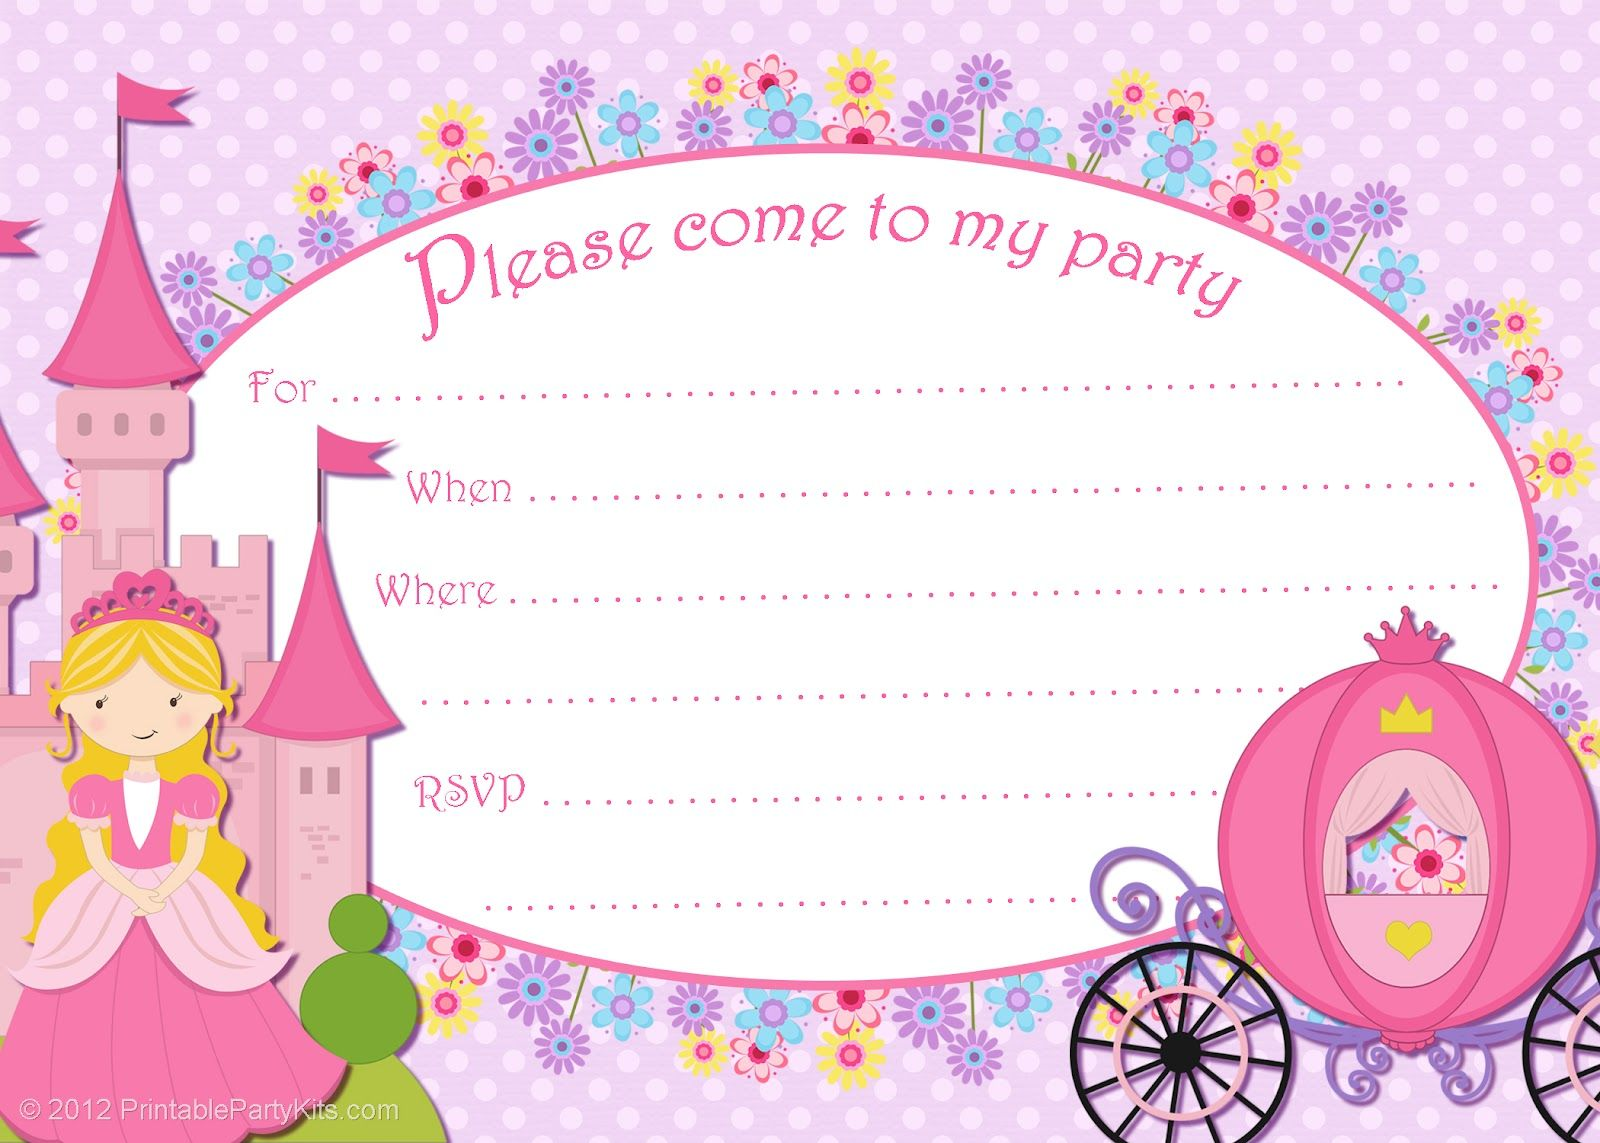 free printable purple and pink cinderella party invitation | party, Birthday invitations